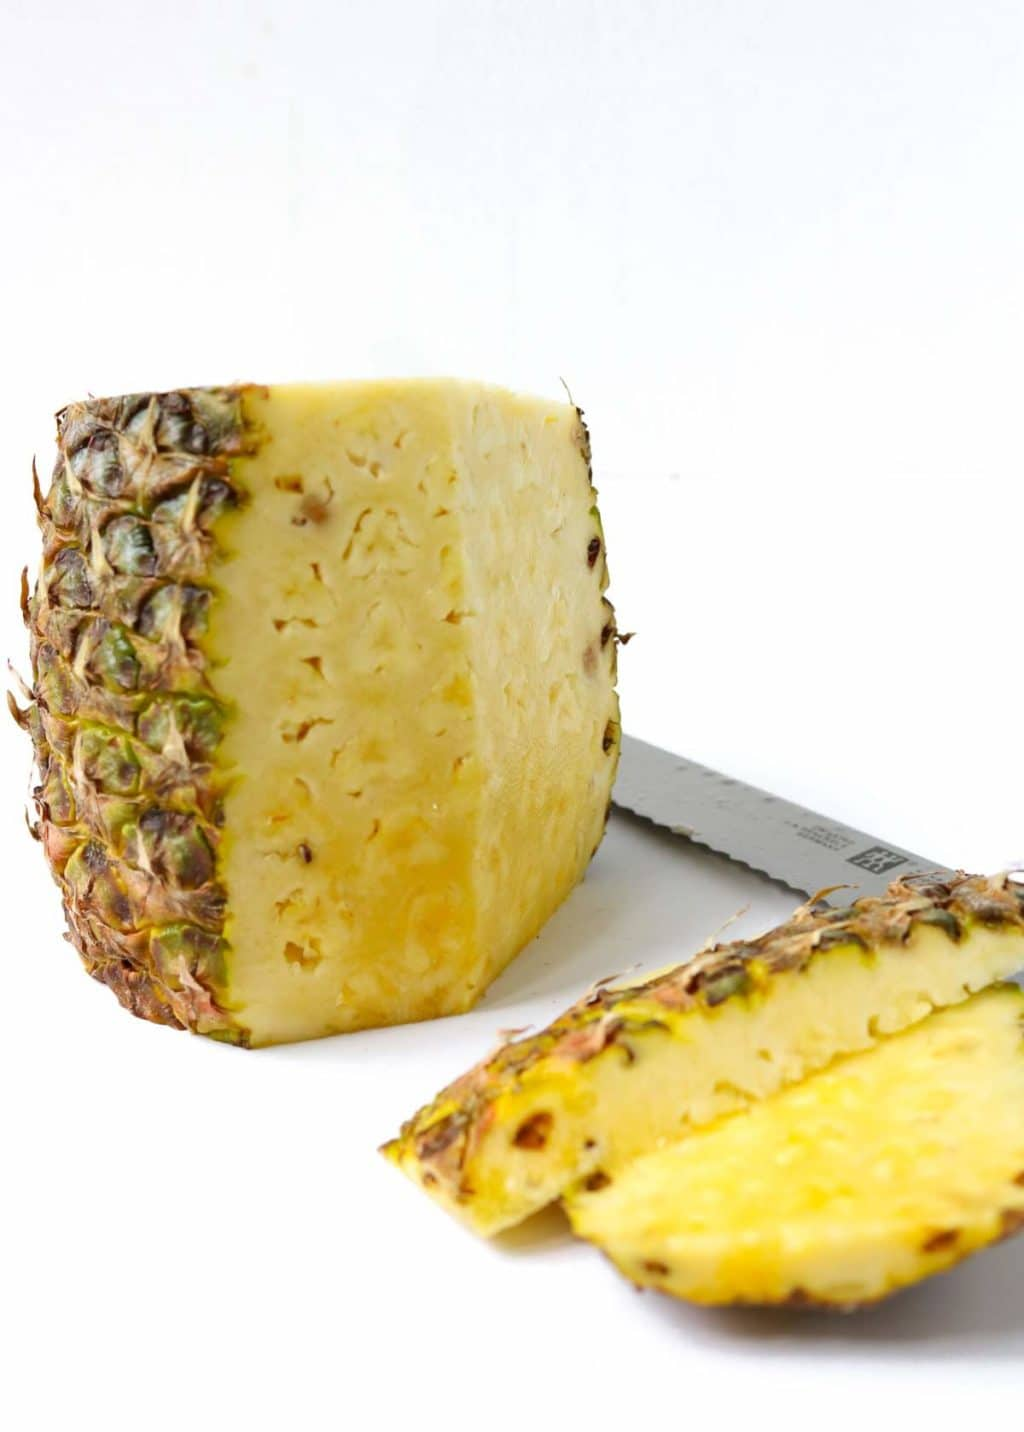 Fresh Pineapple with the rind cut off, how to cut a fresh pineapple